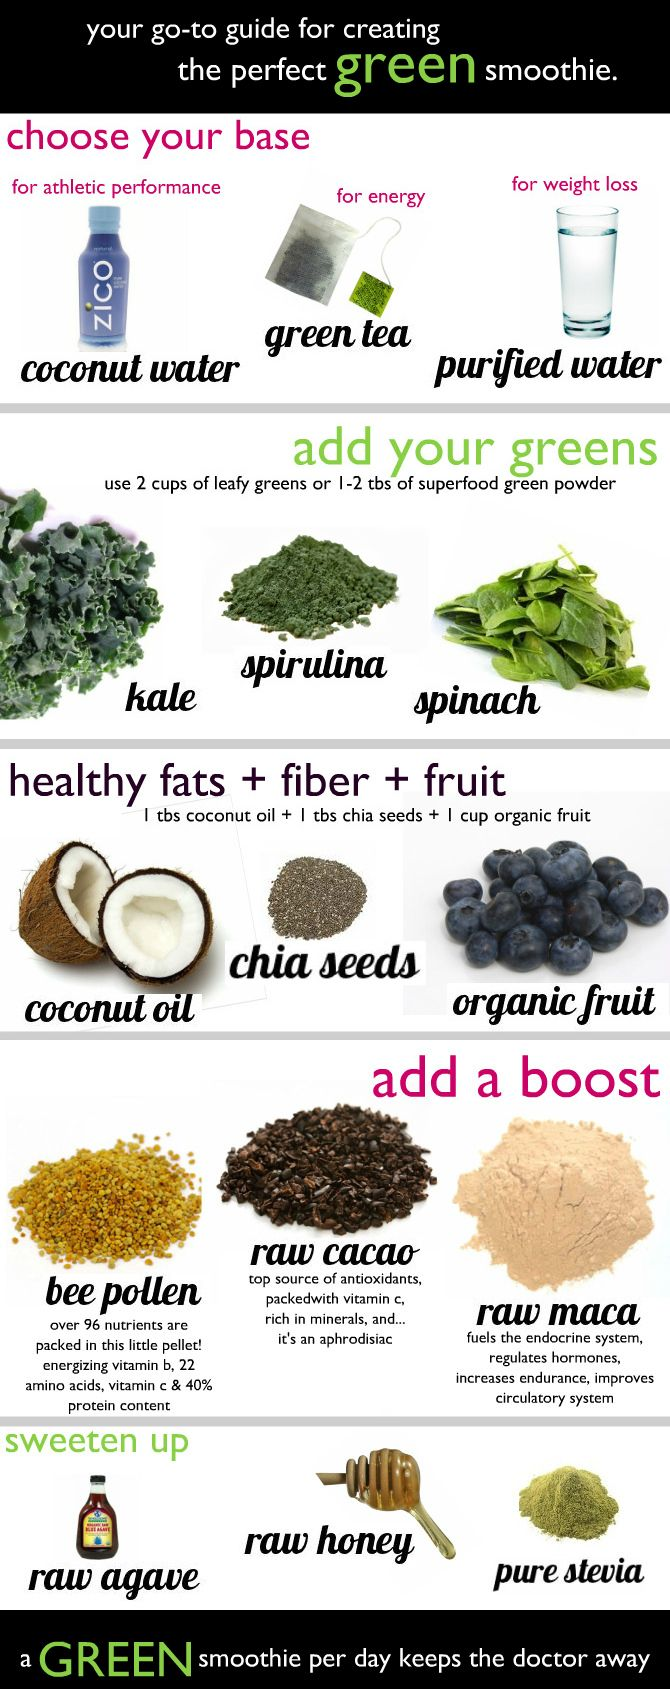 Green smoothie guide via @fortheglow makes a complex, highly nutritious drink doable.